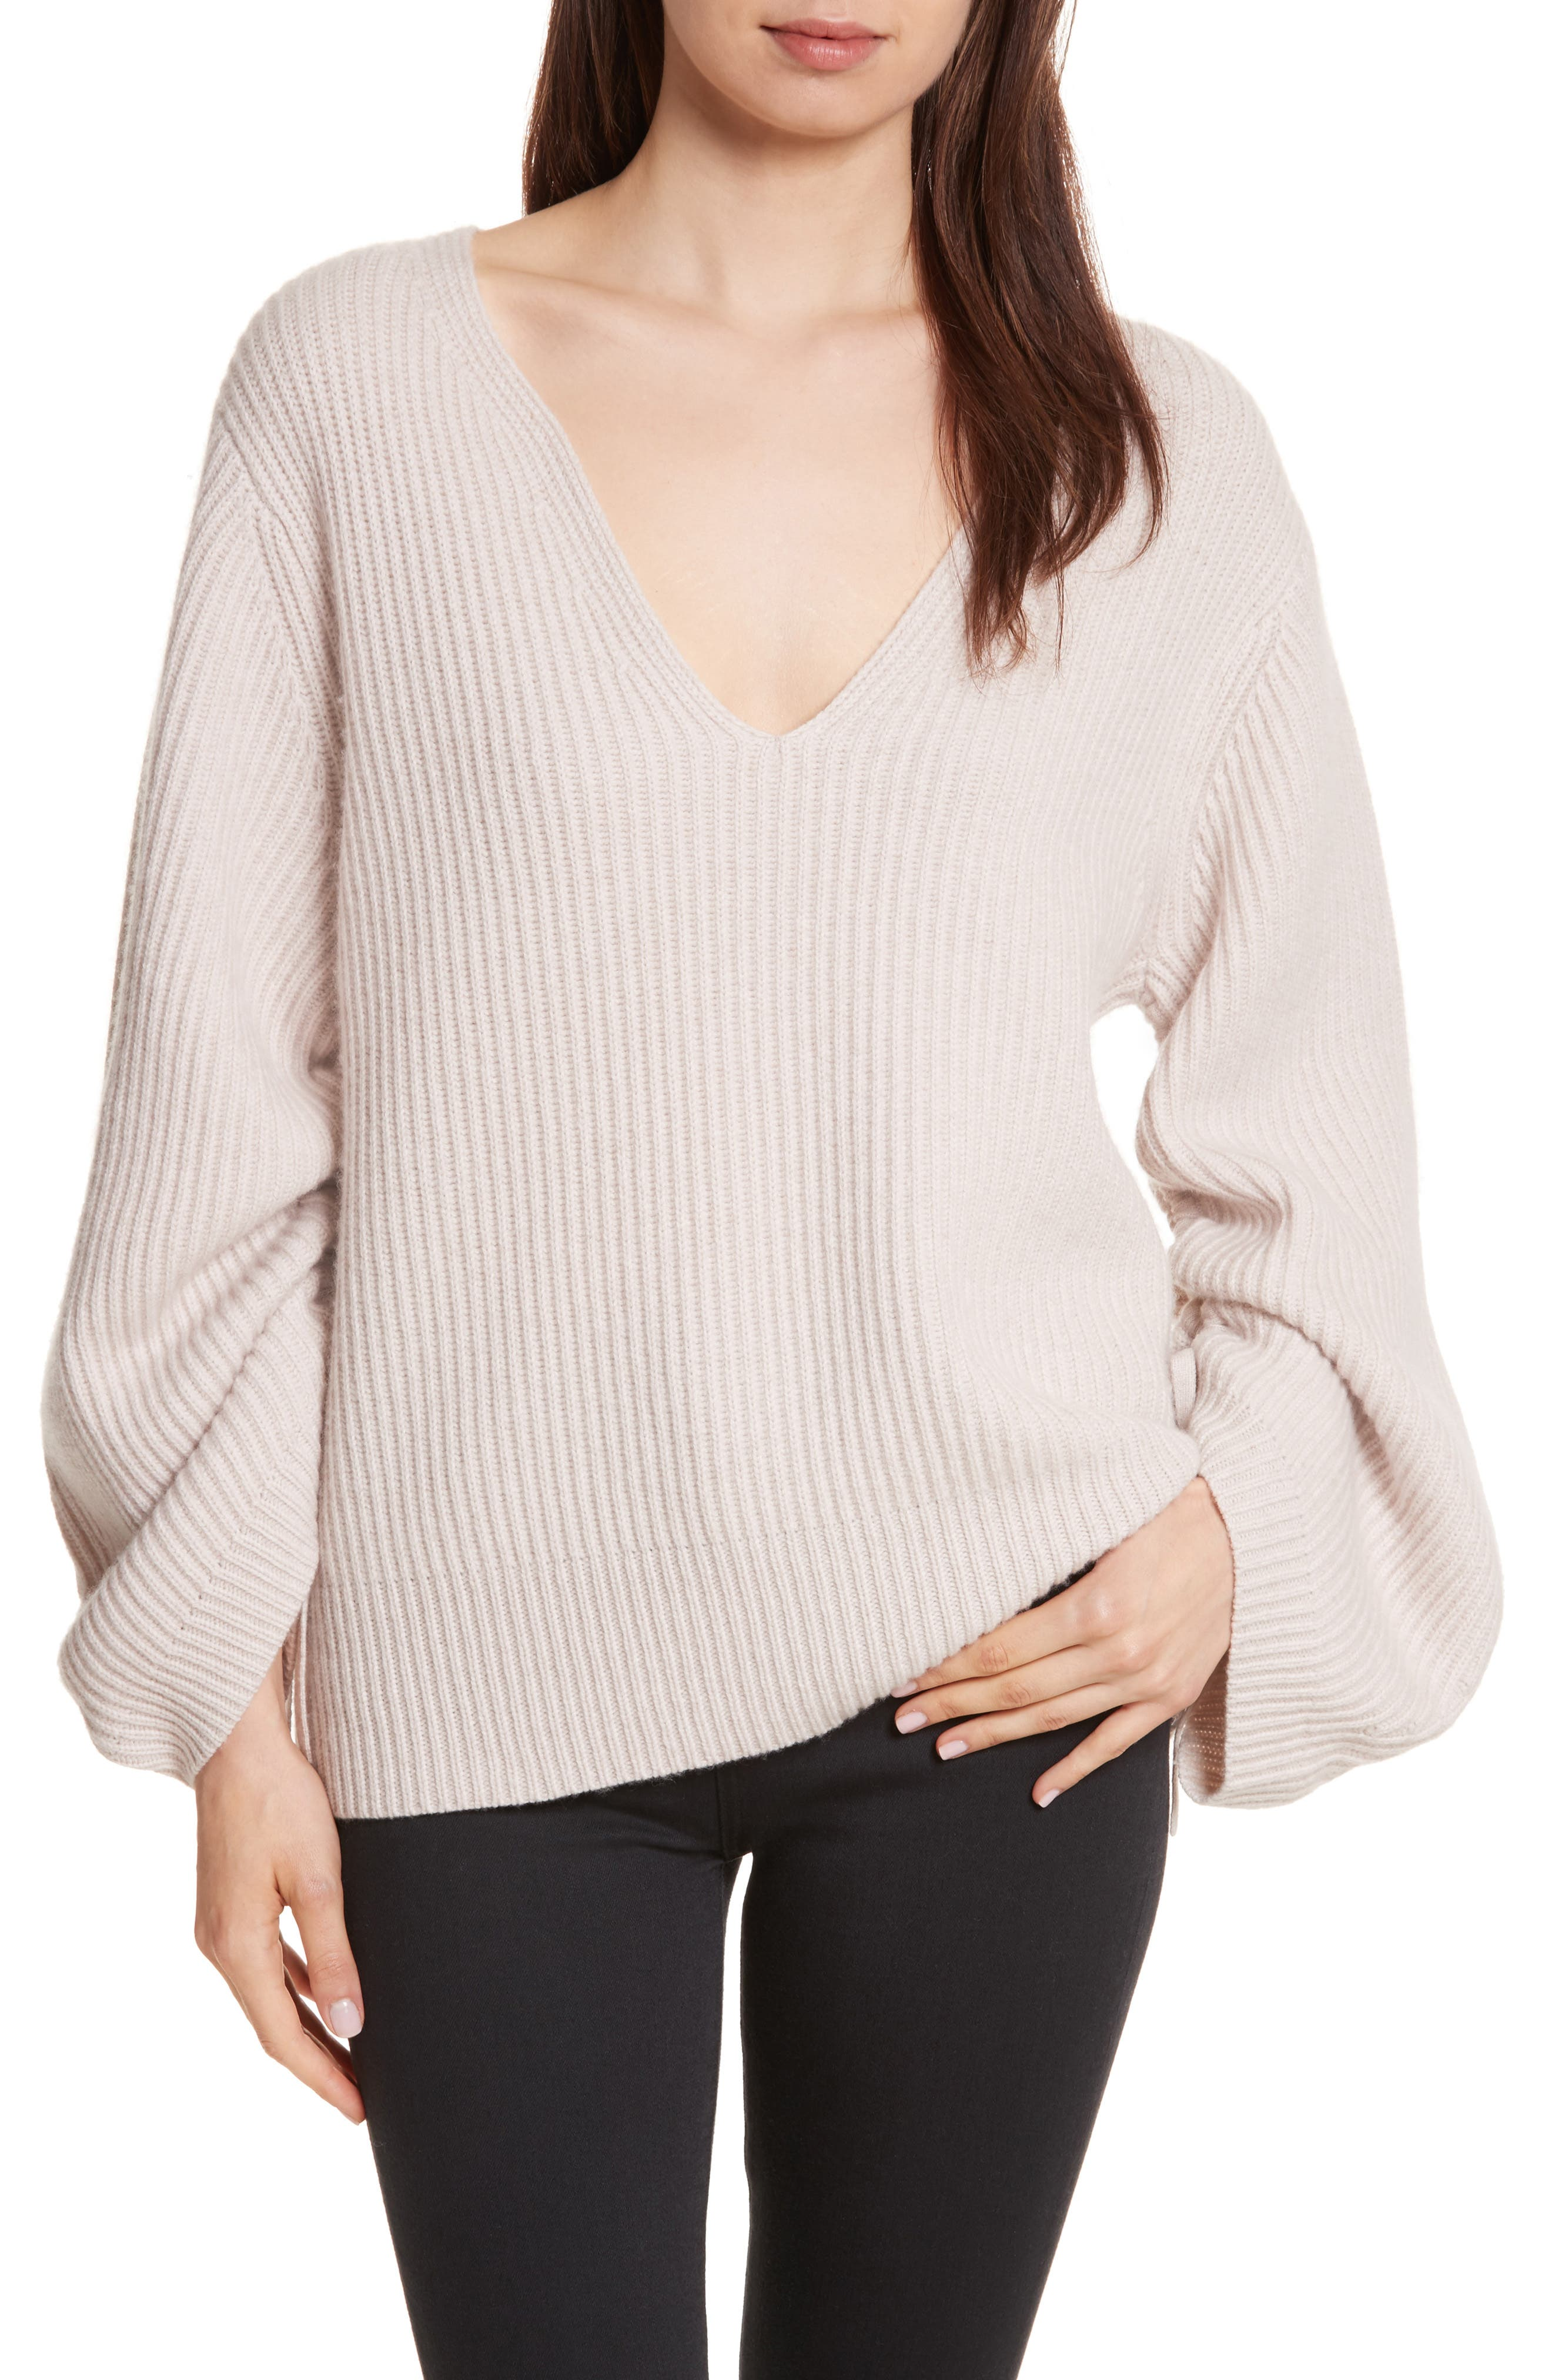 Anneka Wool & Cashmere Puff Sleeve Sweater,                         Main,                         color, Nude Beige Melange